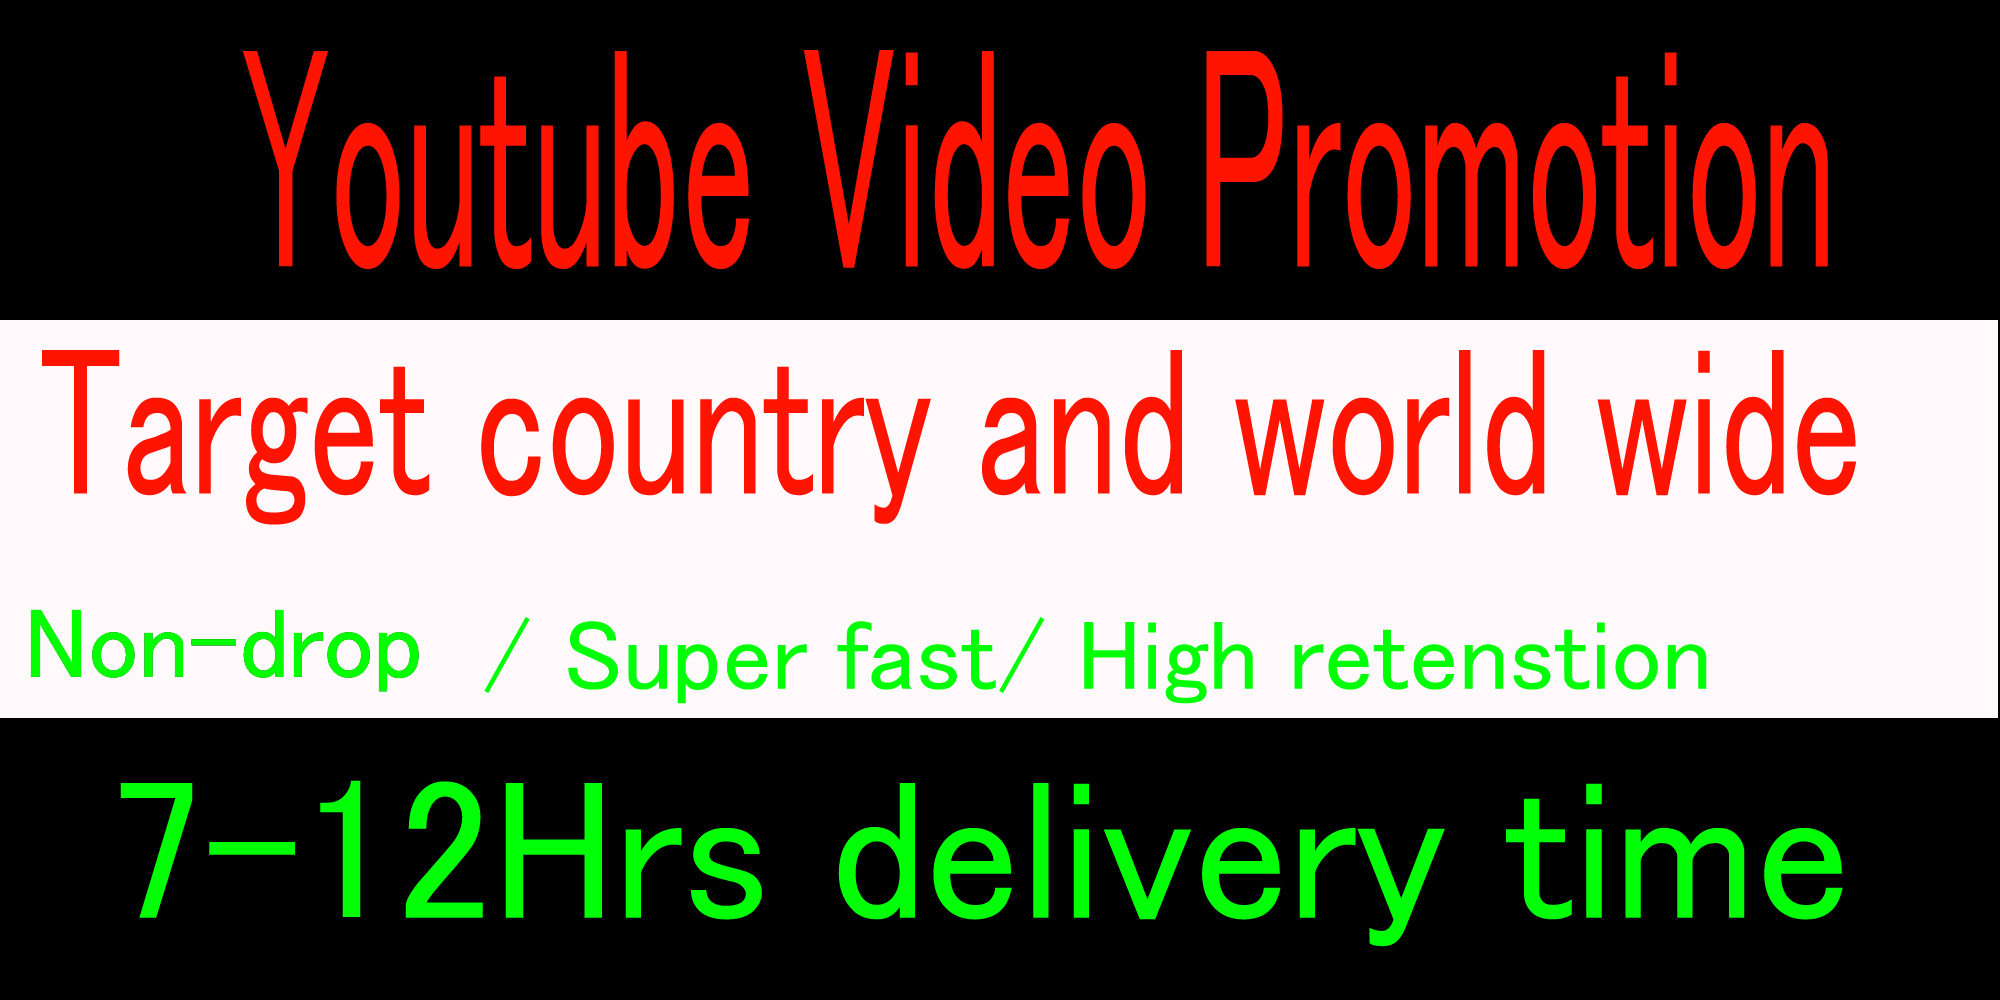 Life time Organic High retention Youtube music video promotion from USA, UK, Italy, Canada,  australia.